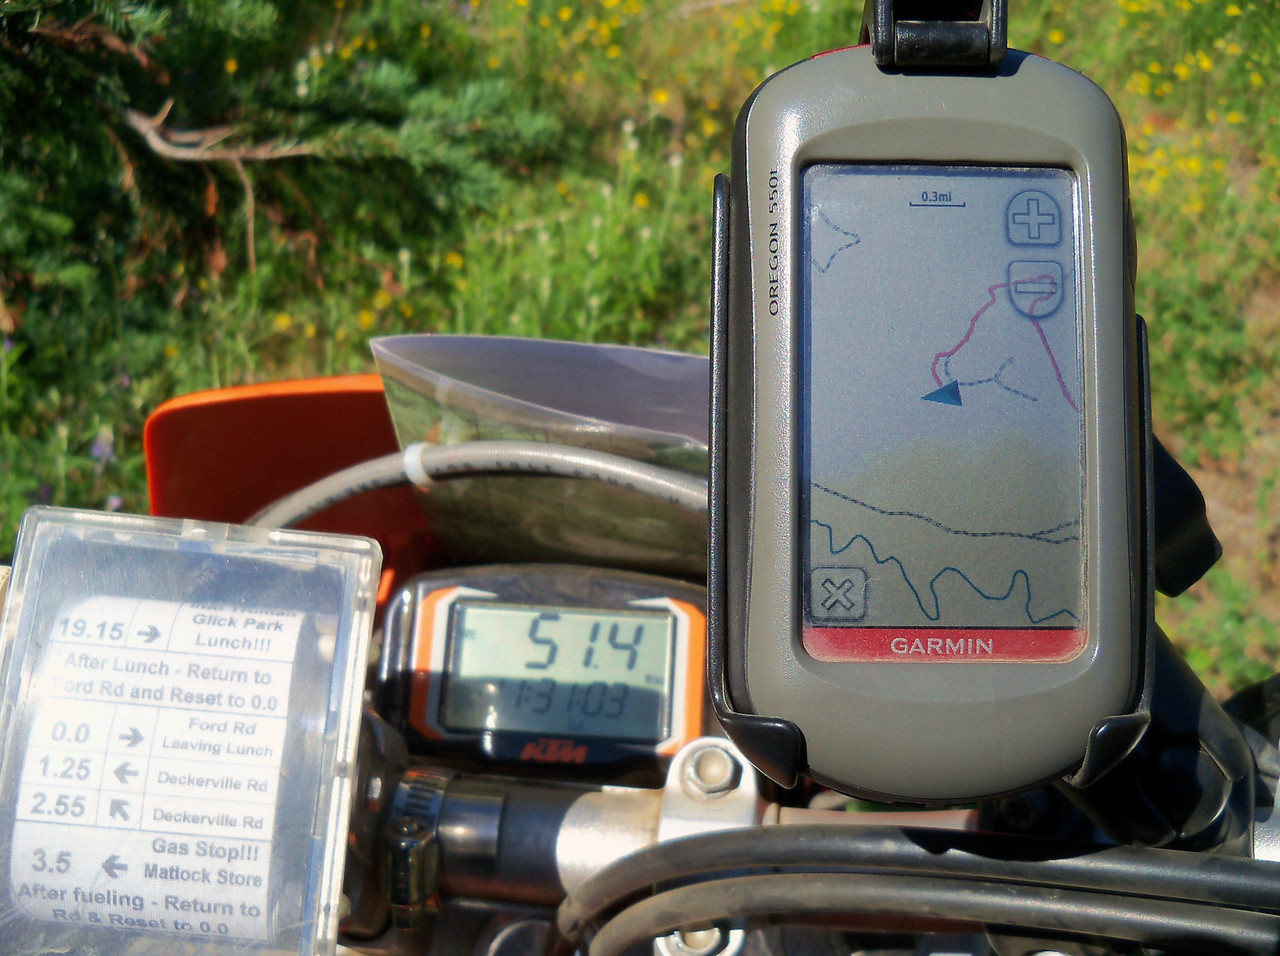 """The Oregon is awesome... I added the Garmin """"City Navigatior"""" N. America map set with routeable roads... I set the Oregon to """"Motorcycle Driving""""..."""